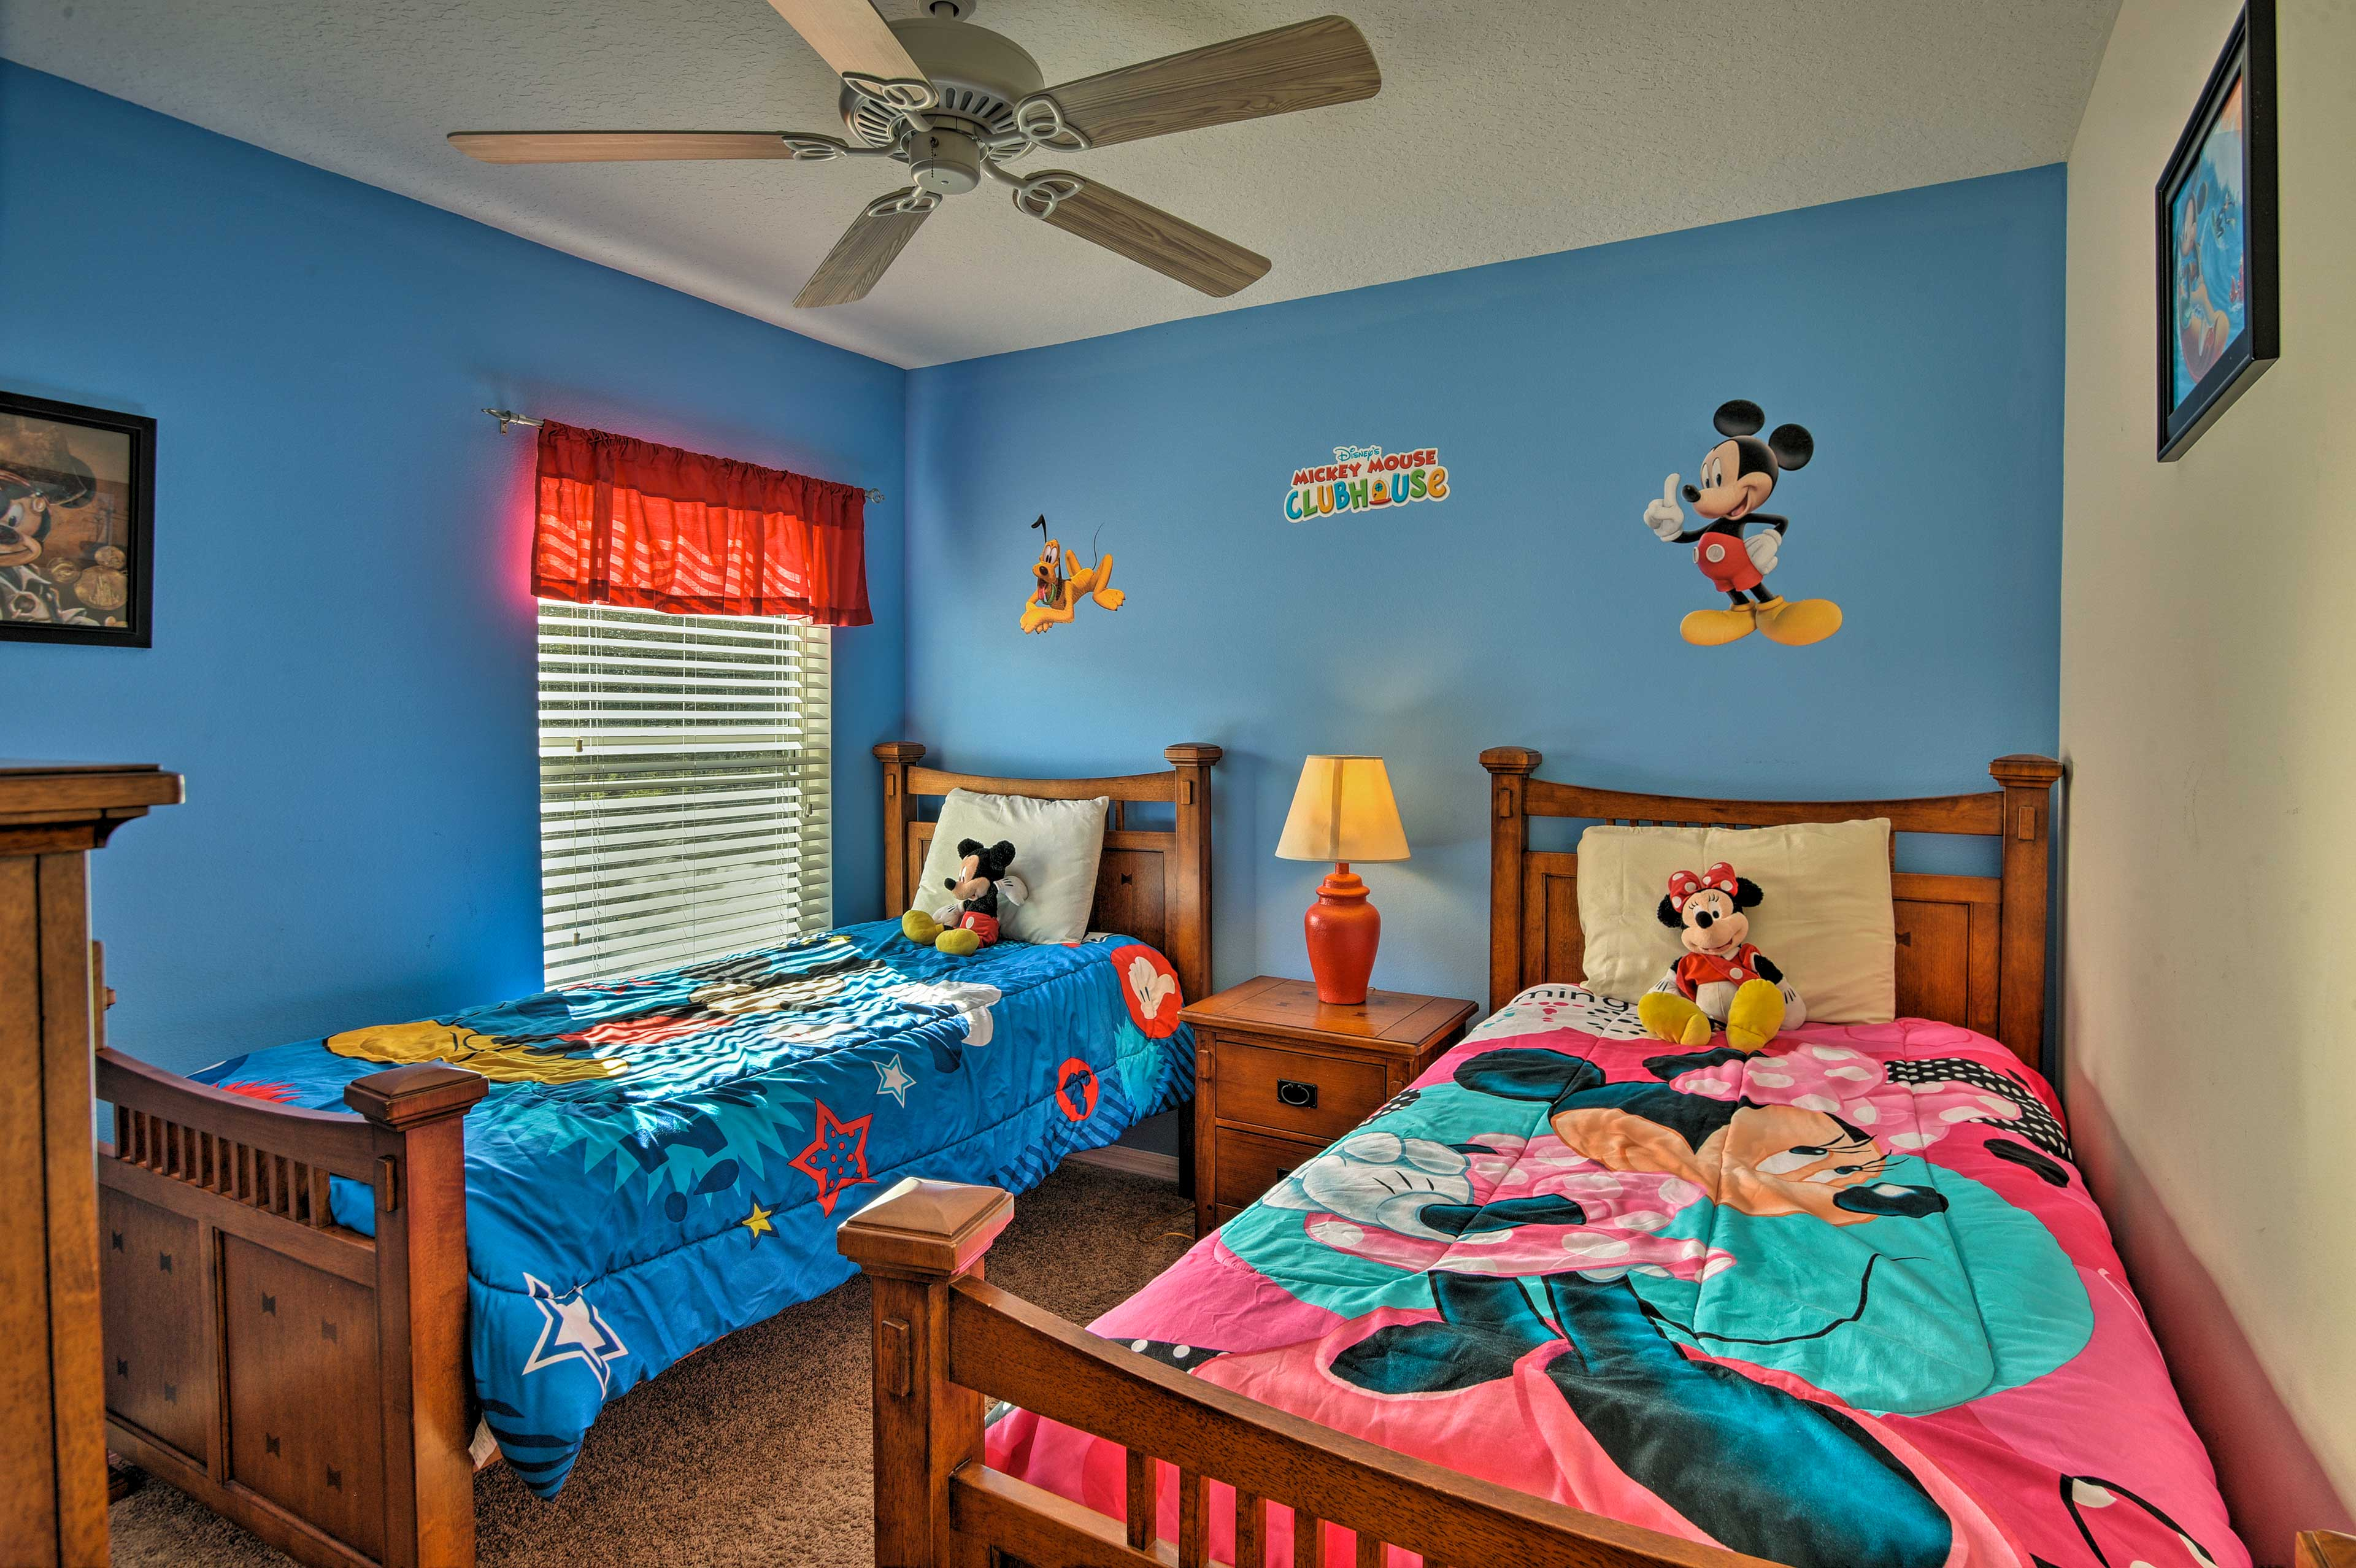 This room boasts characters from Disney!